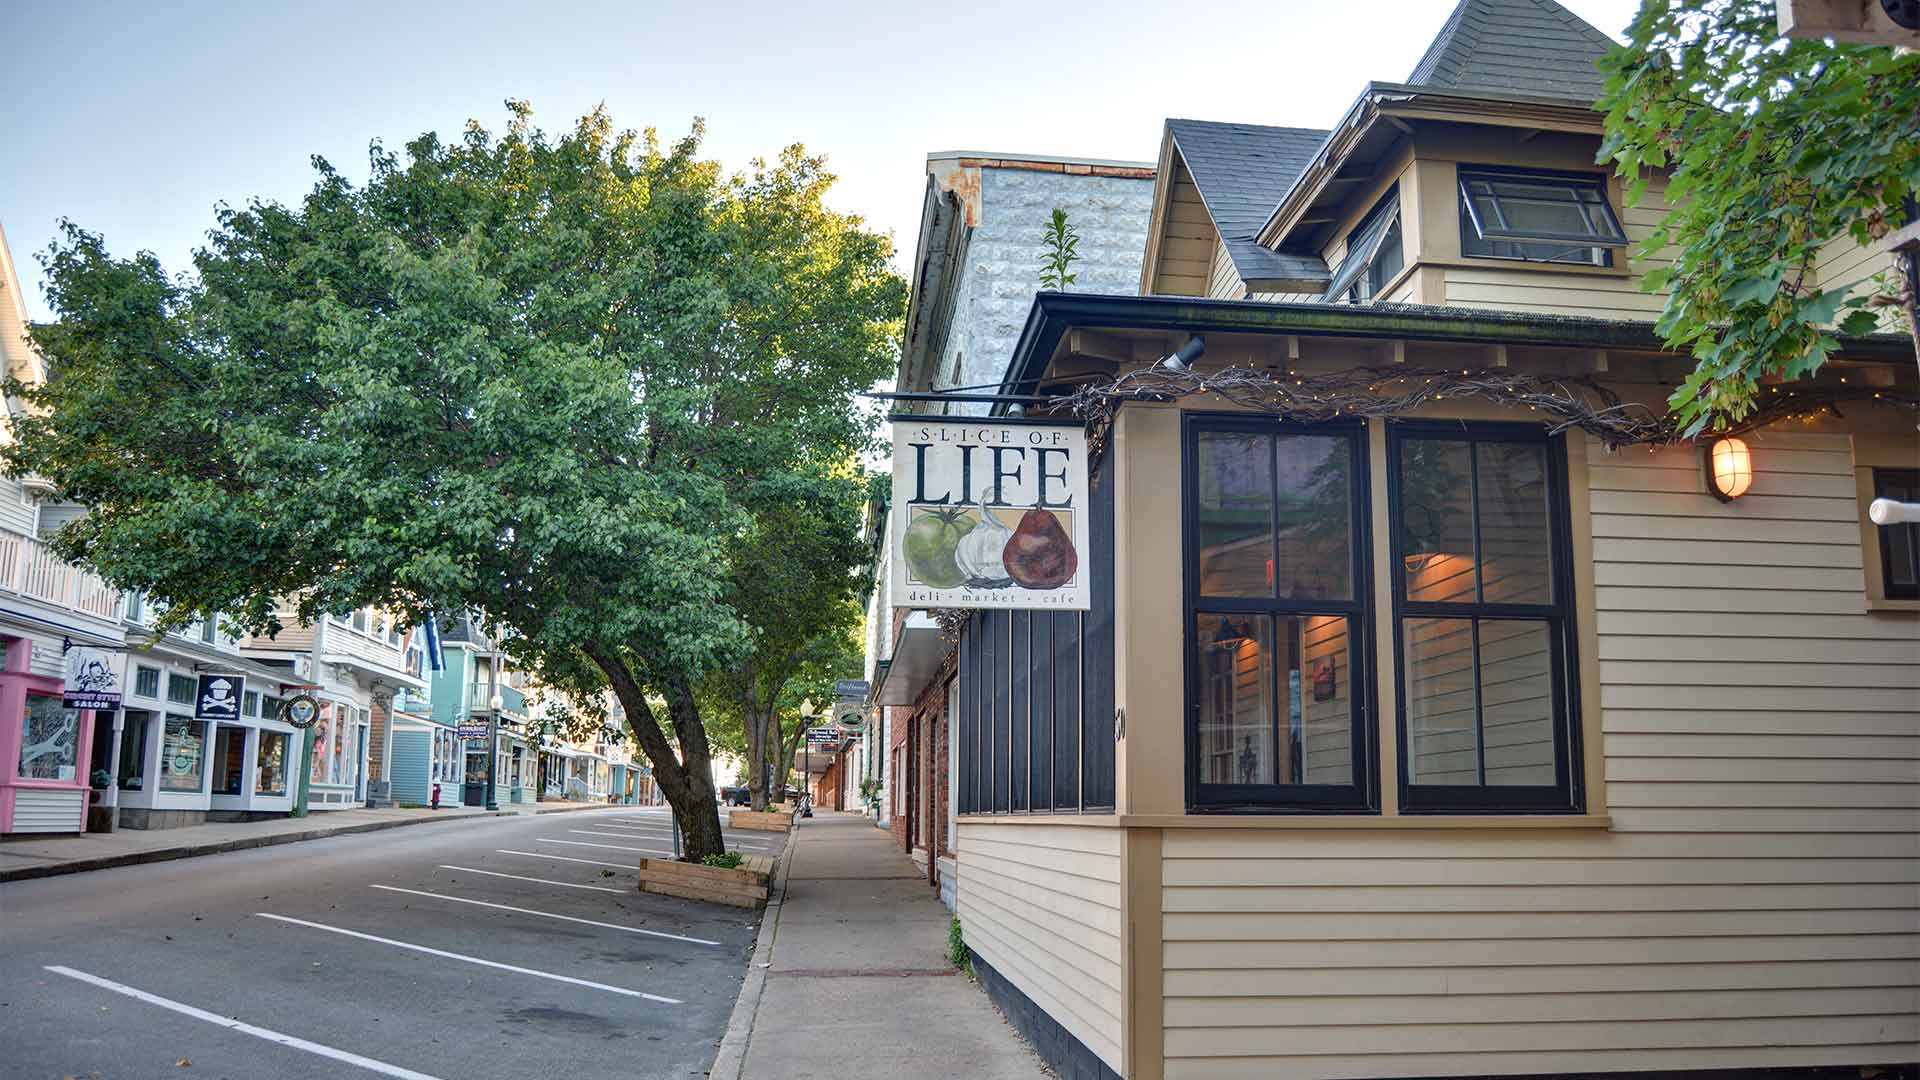 Slice of Life, 50 Circuit Avenue, Oak Bluffs, Martha's Vineyard